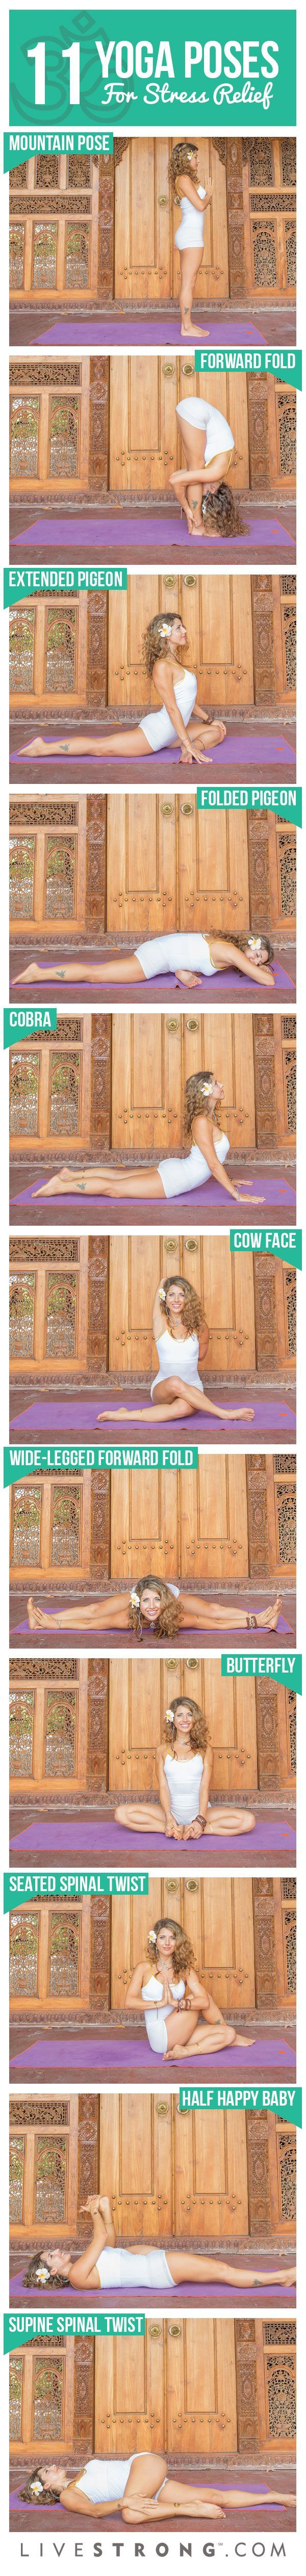 11 #Yoga Poses to Eliminate Stress From Your Day